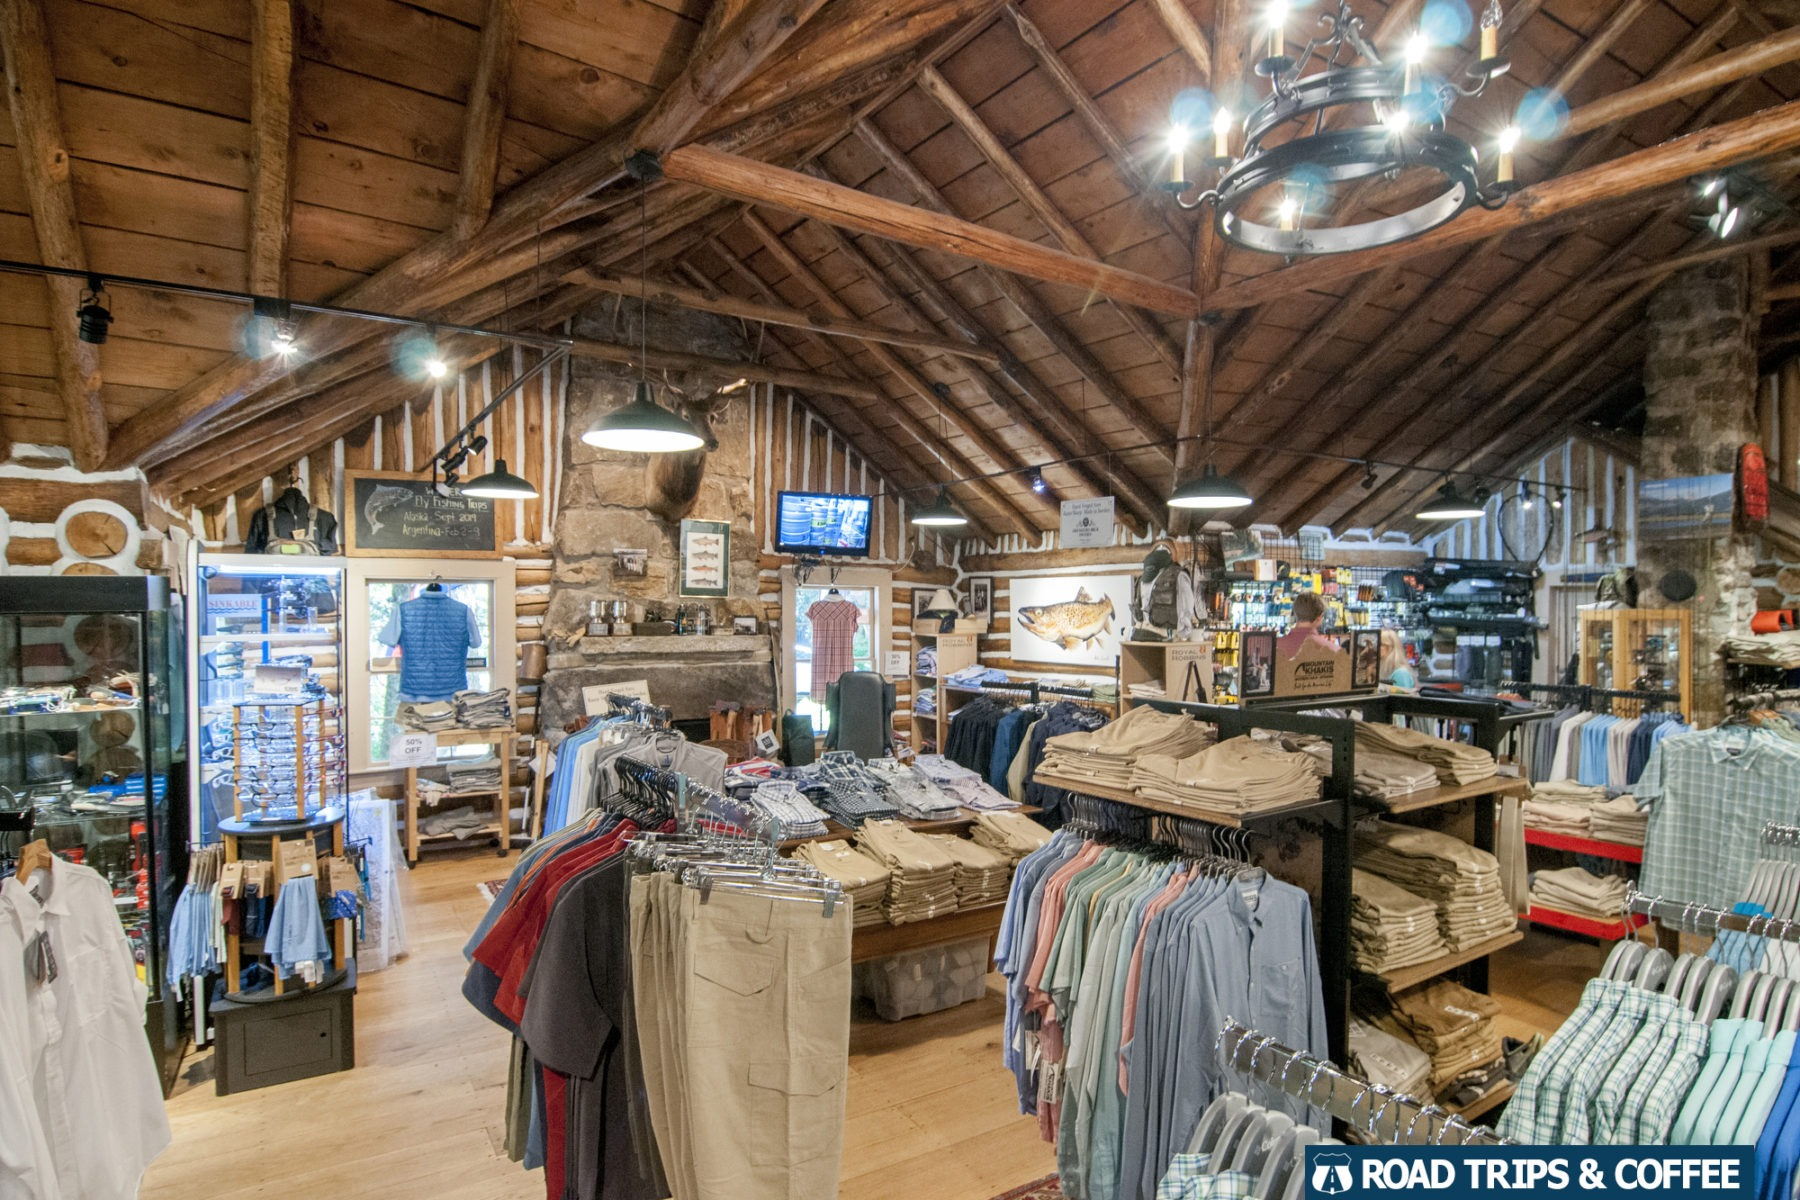 Outdoor clothing spread across racks and gear hang from the insides of a log cabin at Highland Hiker in Highlands, North Carolina